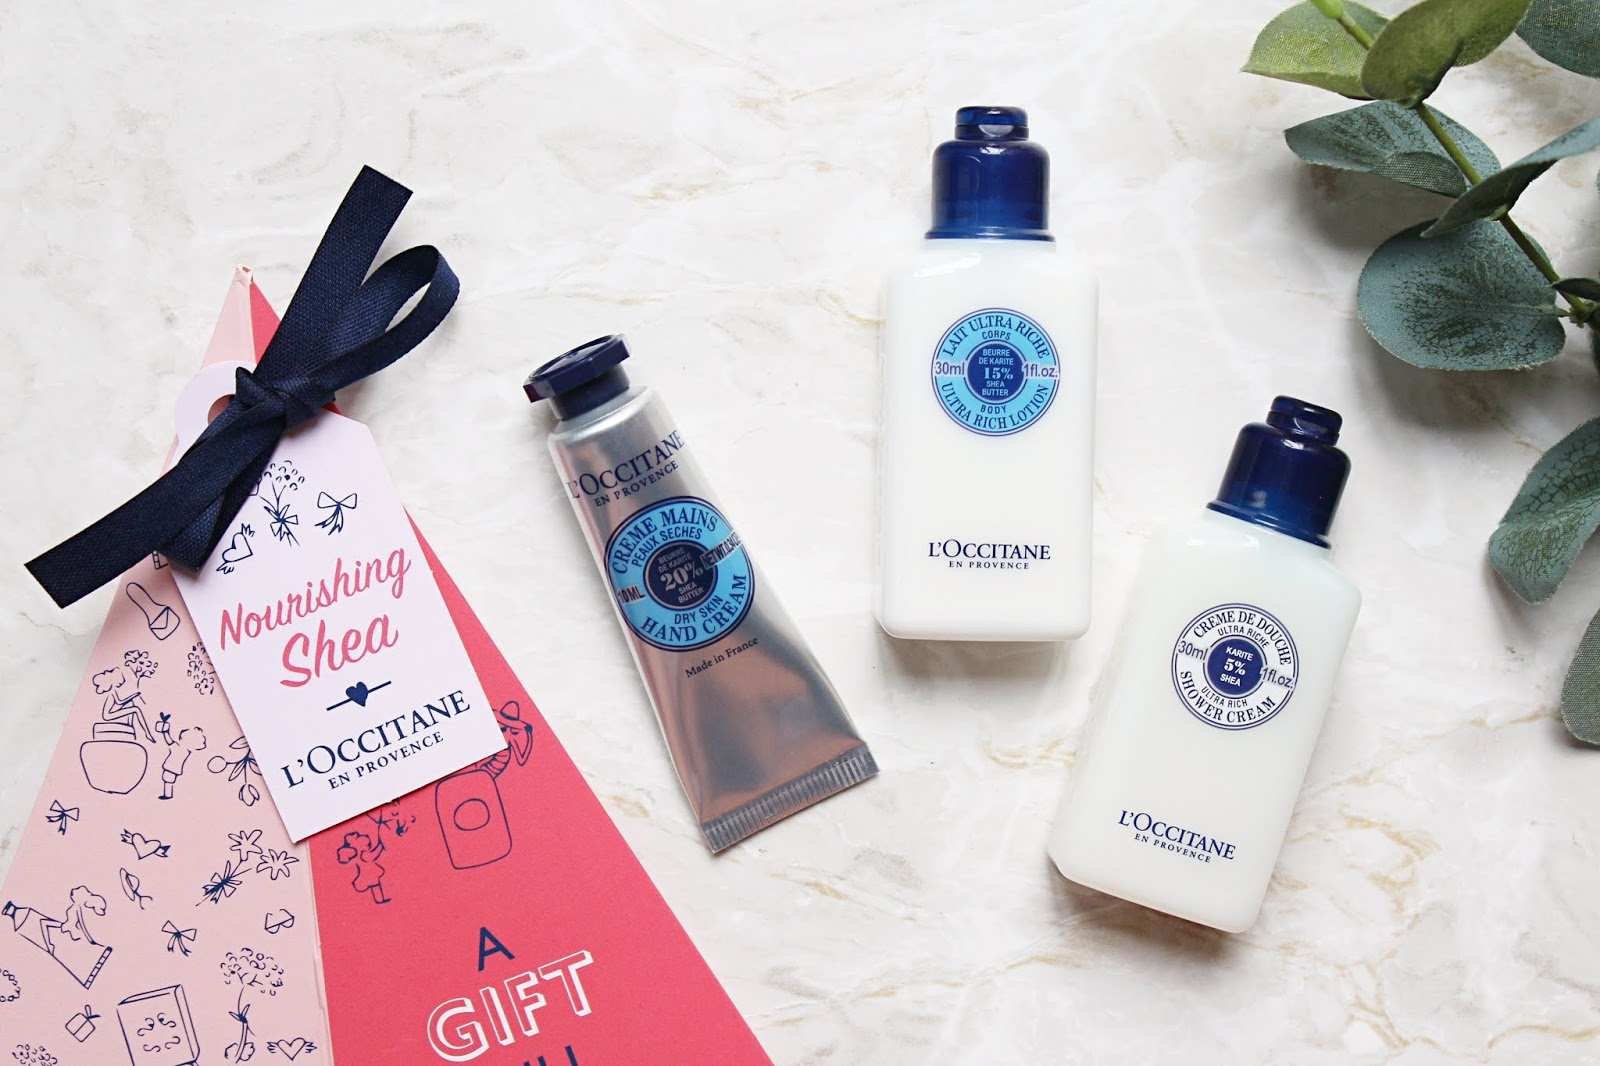 L'Occitane A Gift Full of Love - Nourishing Shea